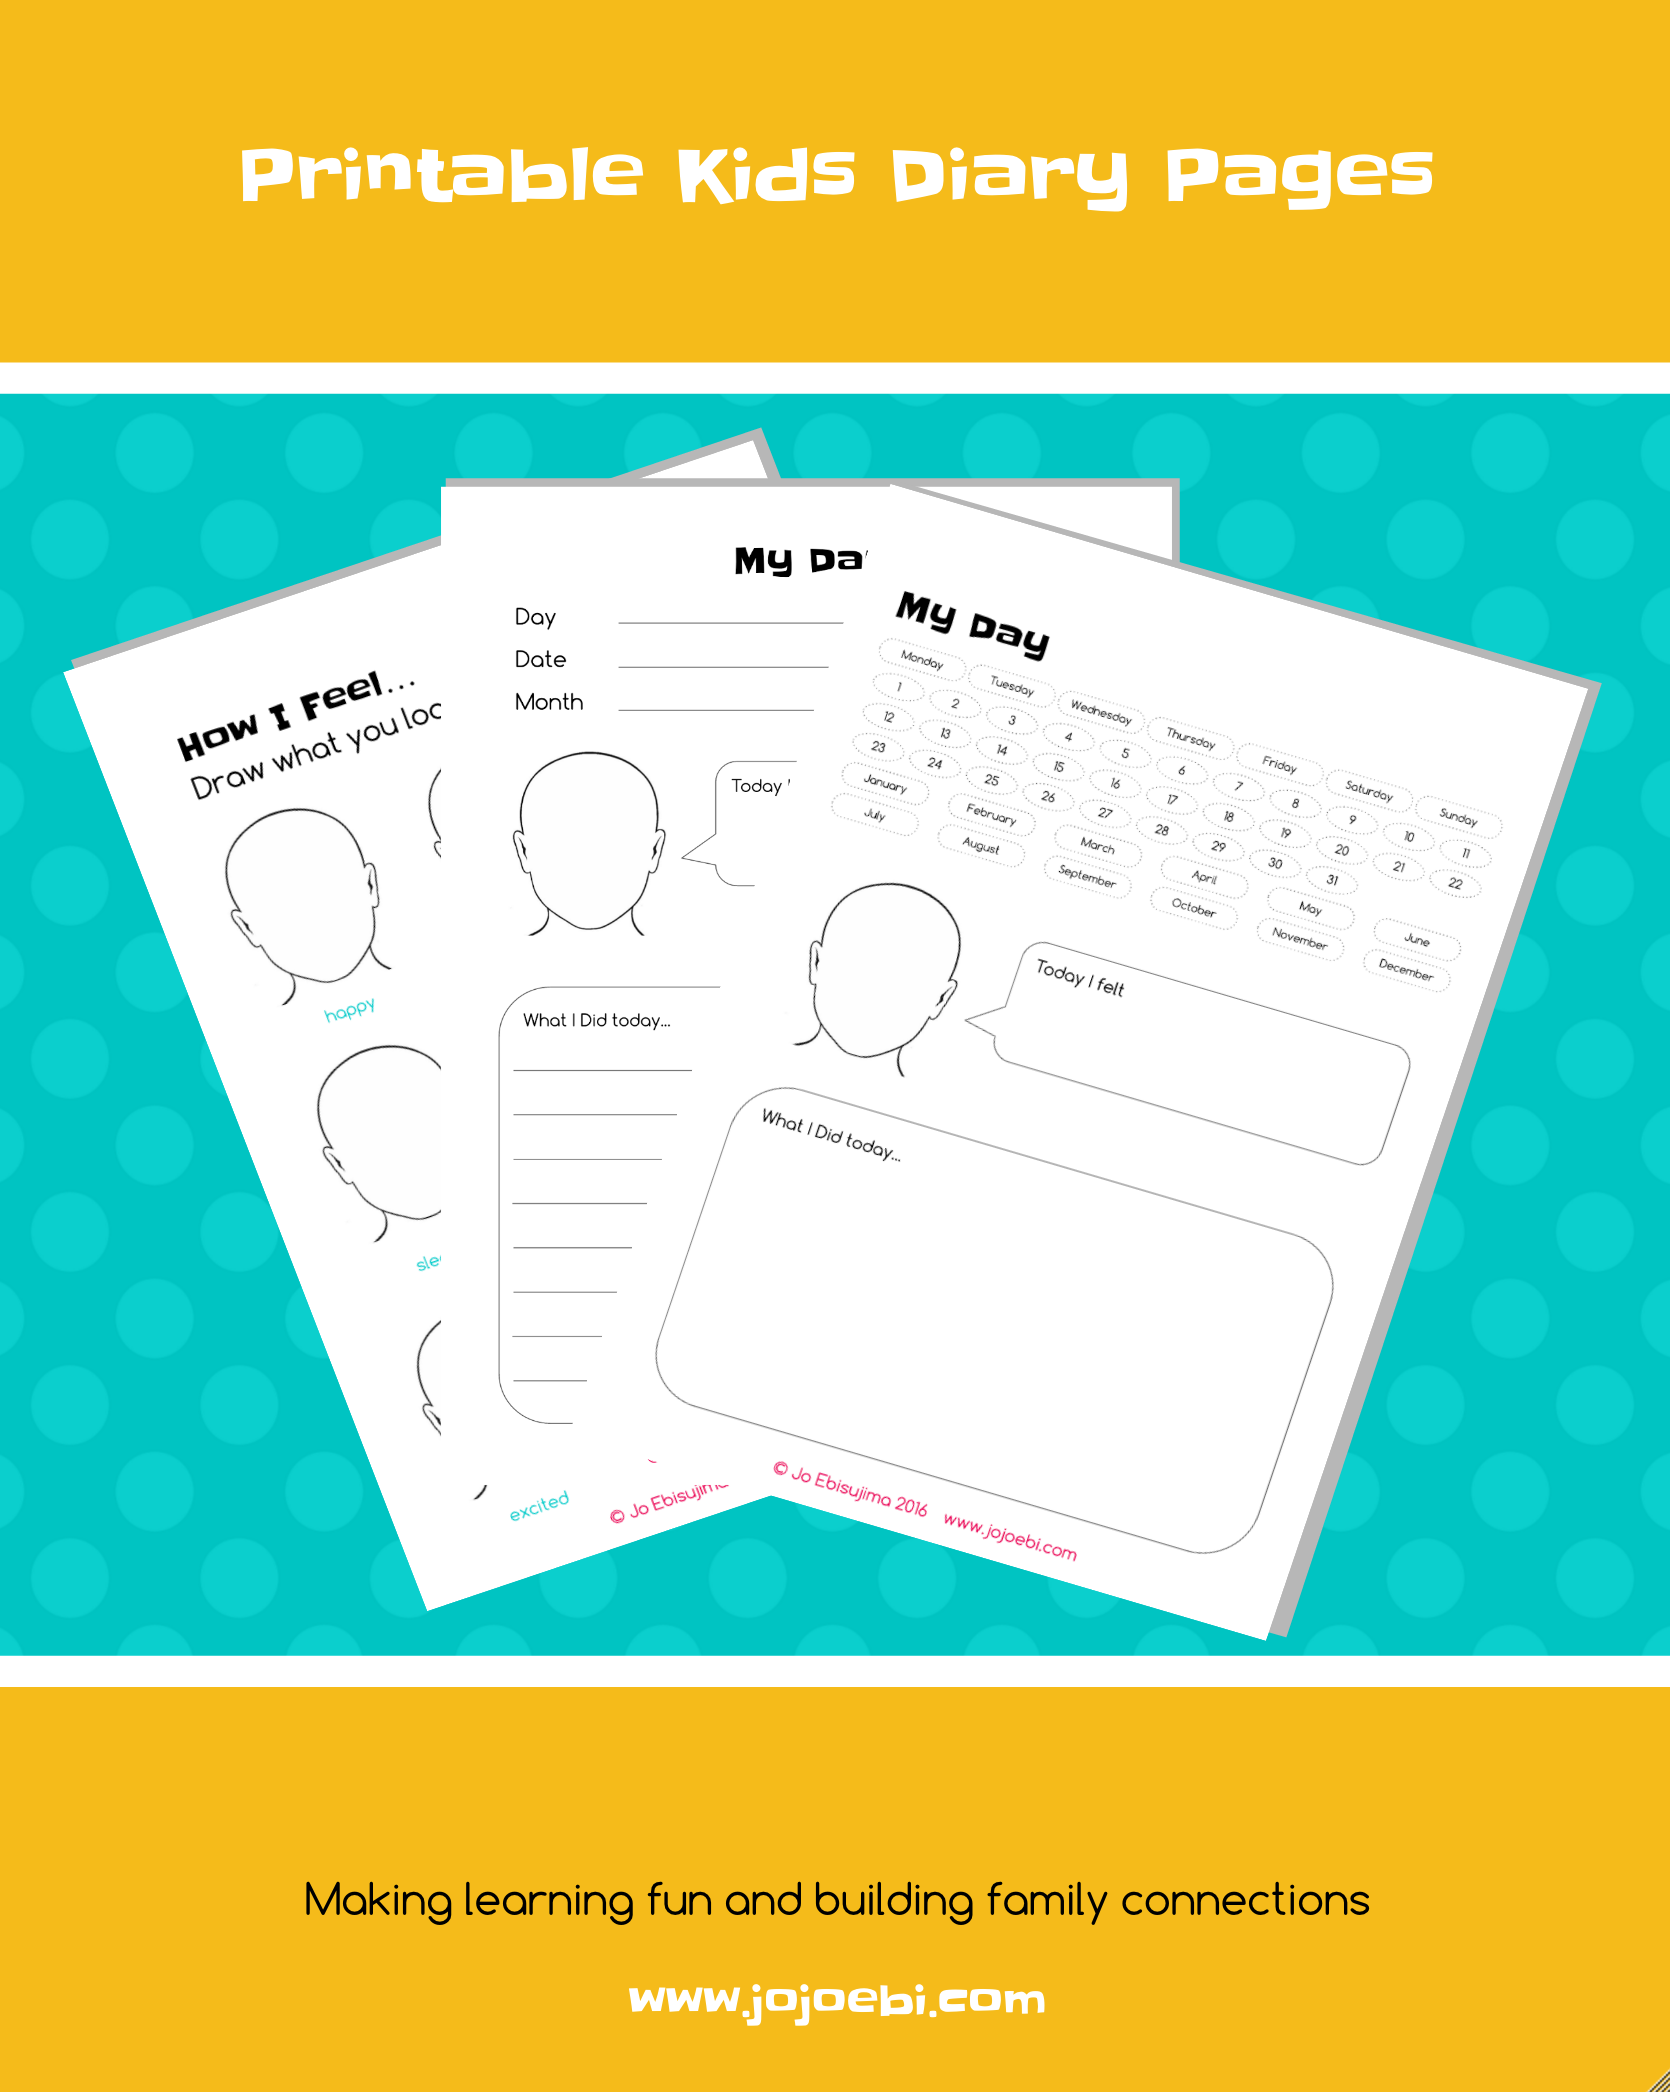 Make Keeping A Diary Fun With This Printable Kids Diary